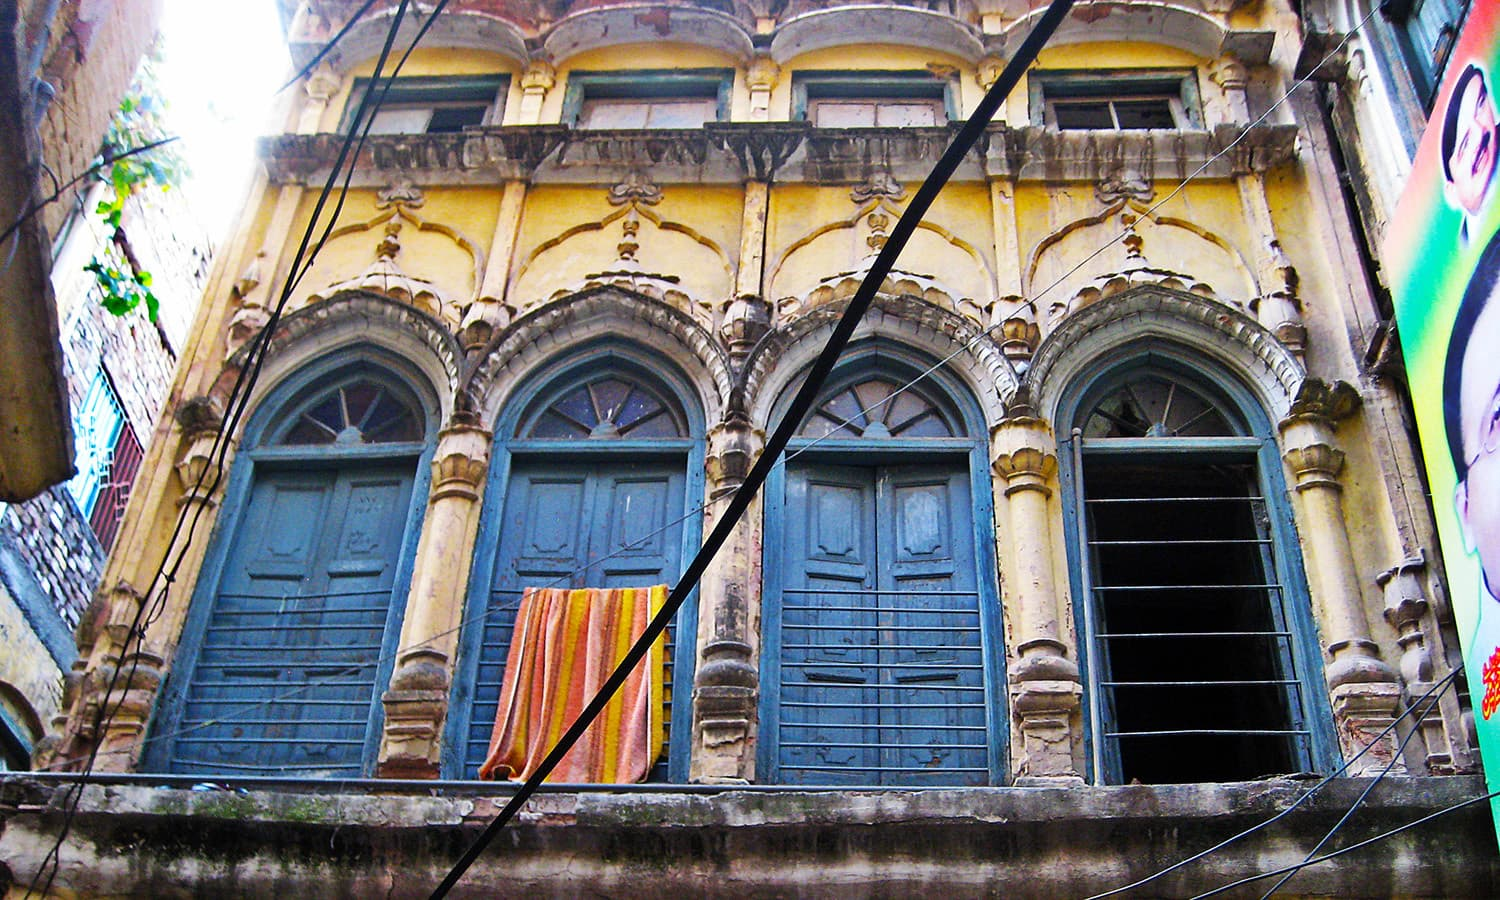 The striking colours make the ancient architecture very picturesque.